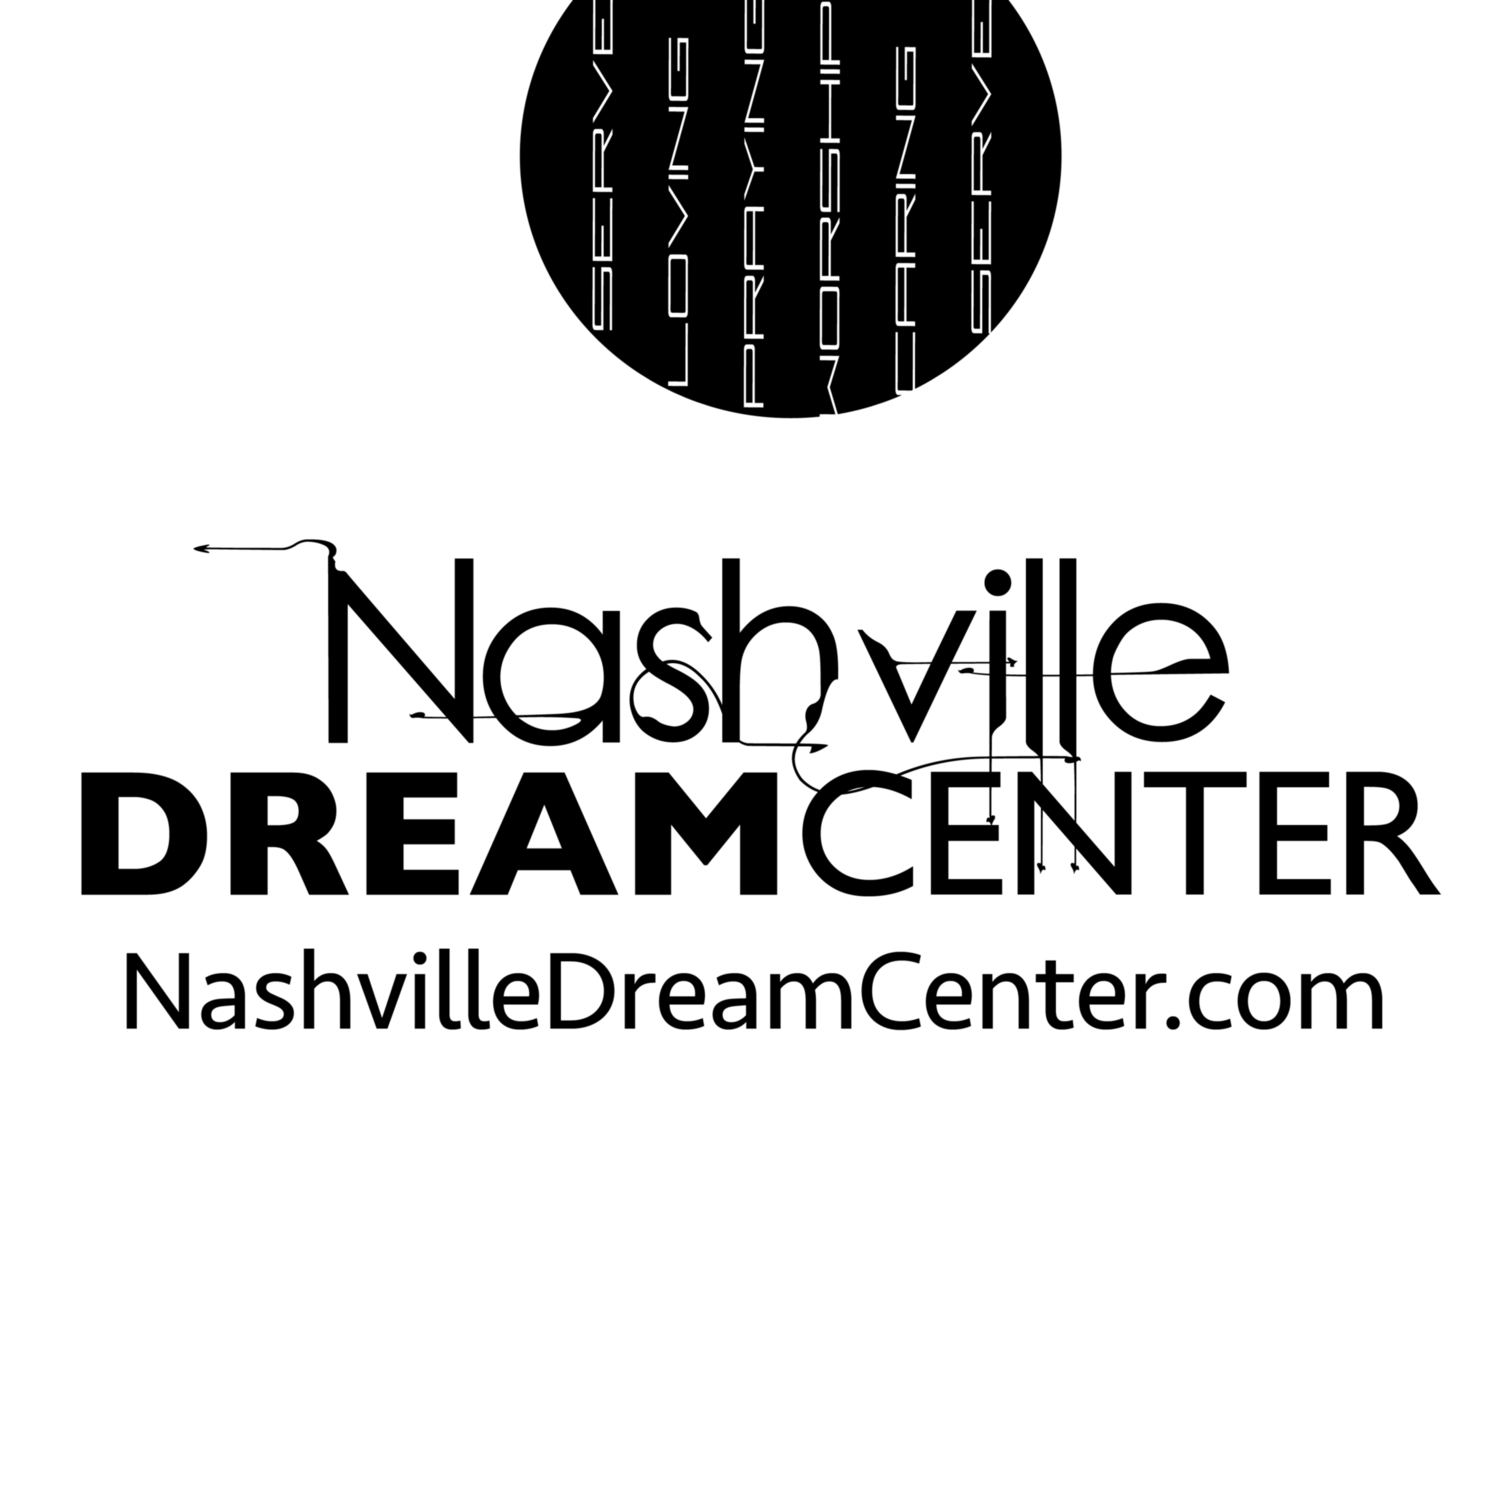 The Nashville Dream Center